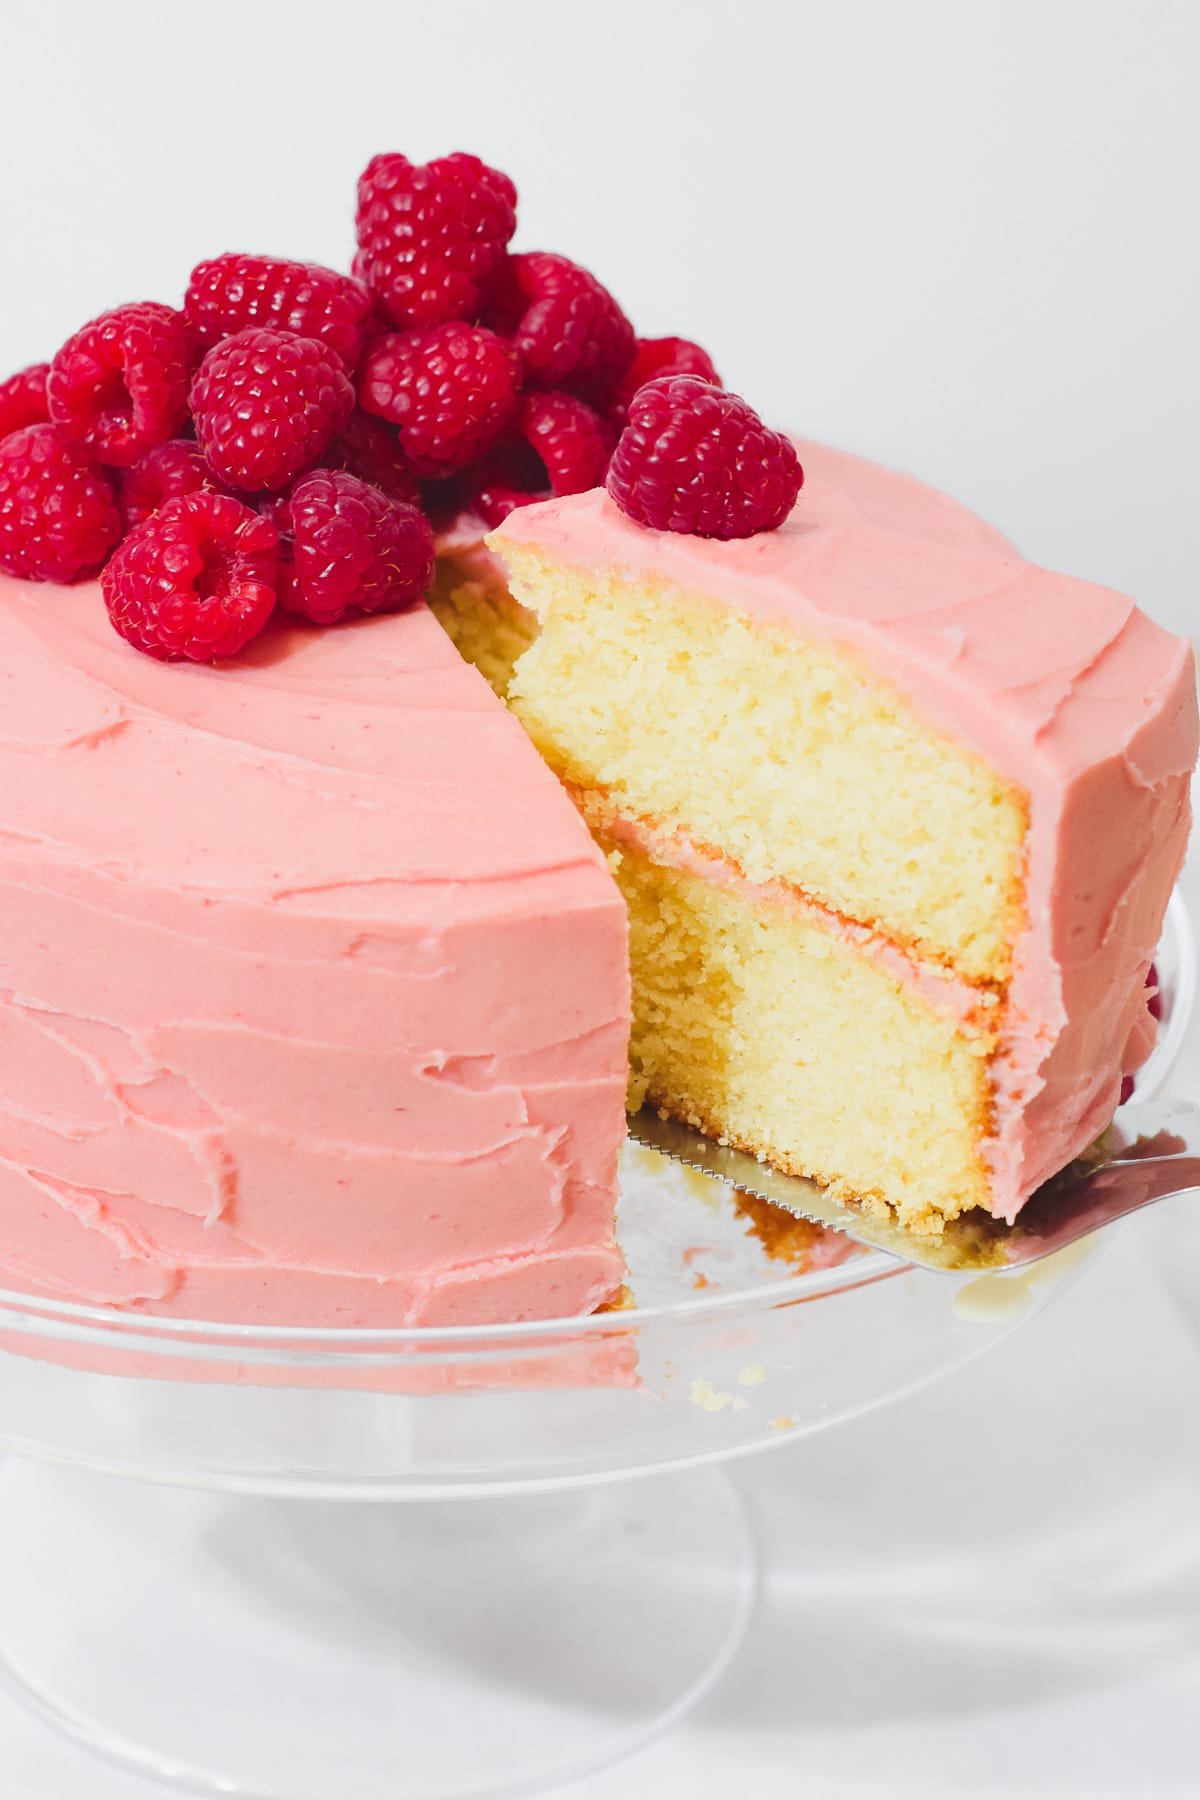 Raspberry white chocolate cake on a cake stand with a slice of cake being taken out